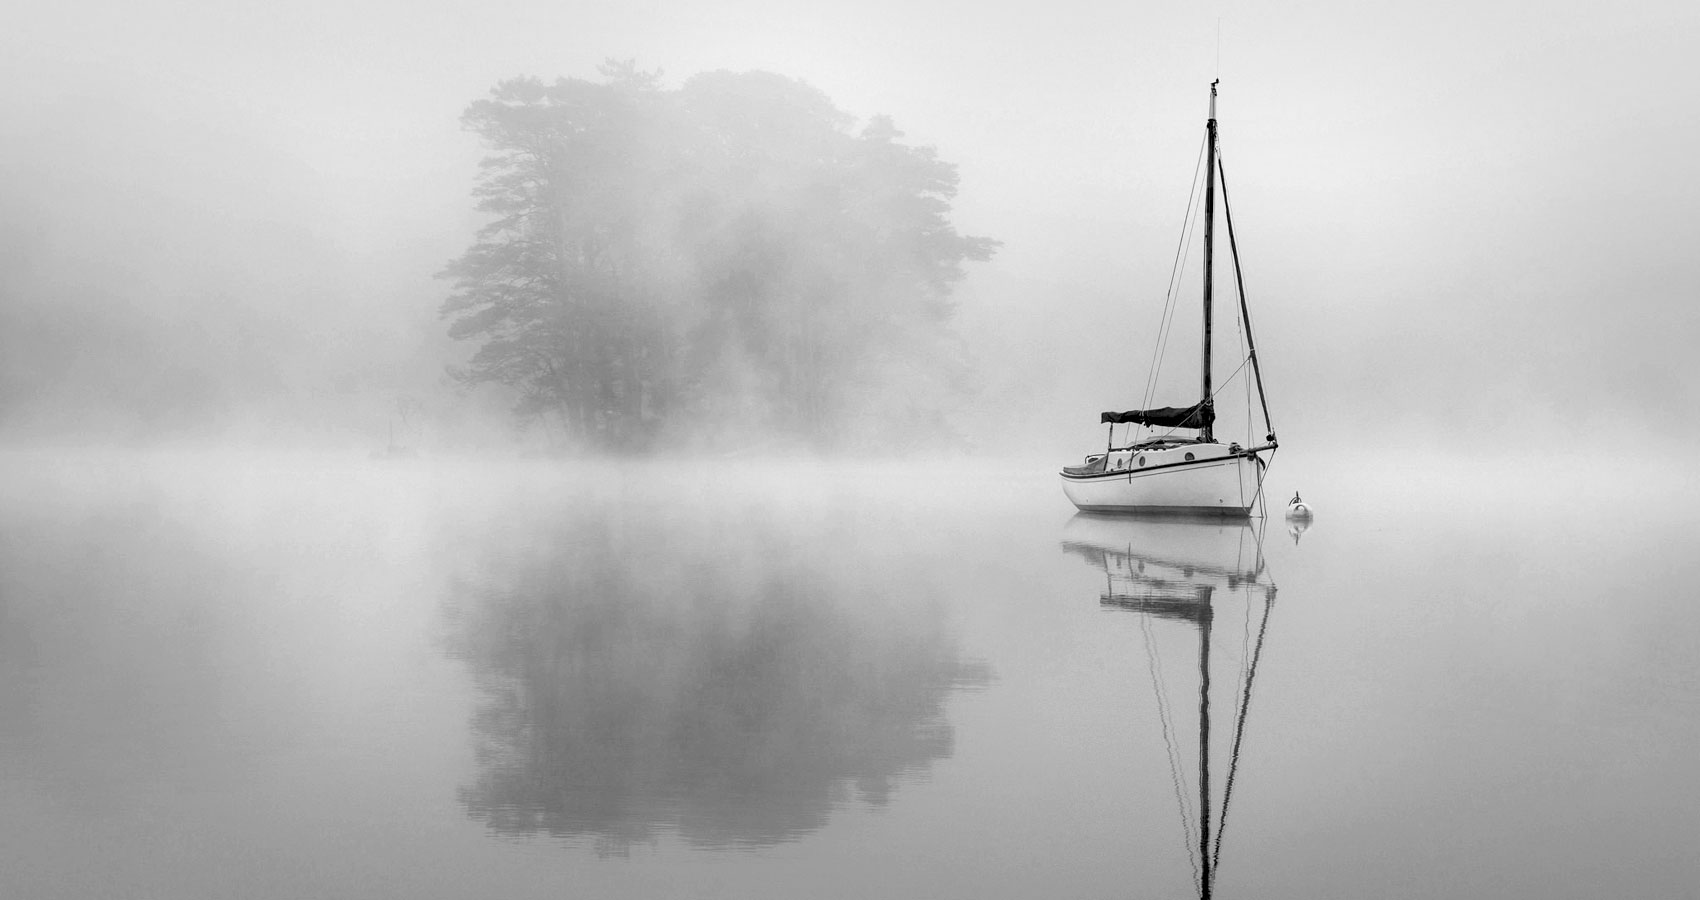 Foggy view at Spillwords.com